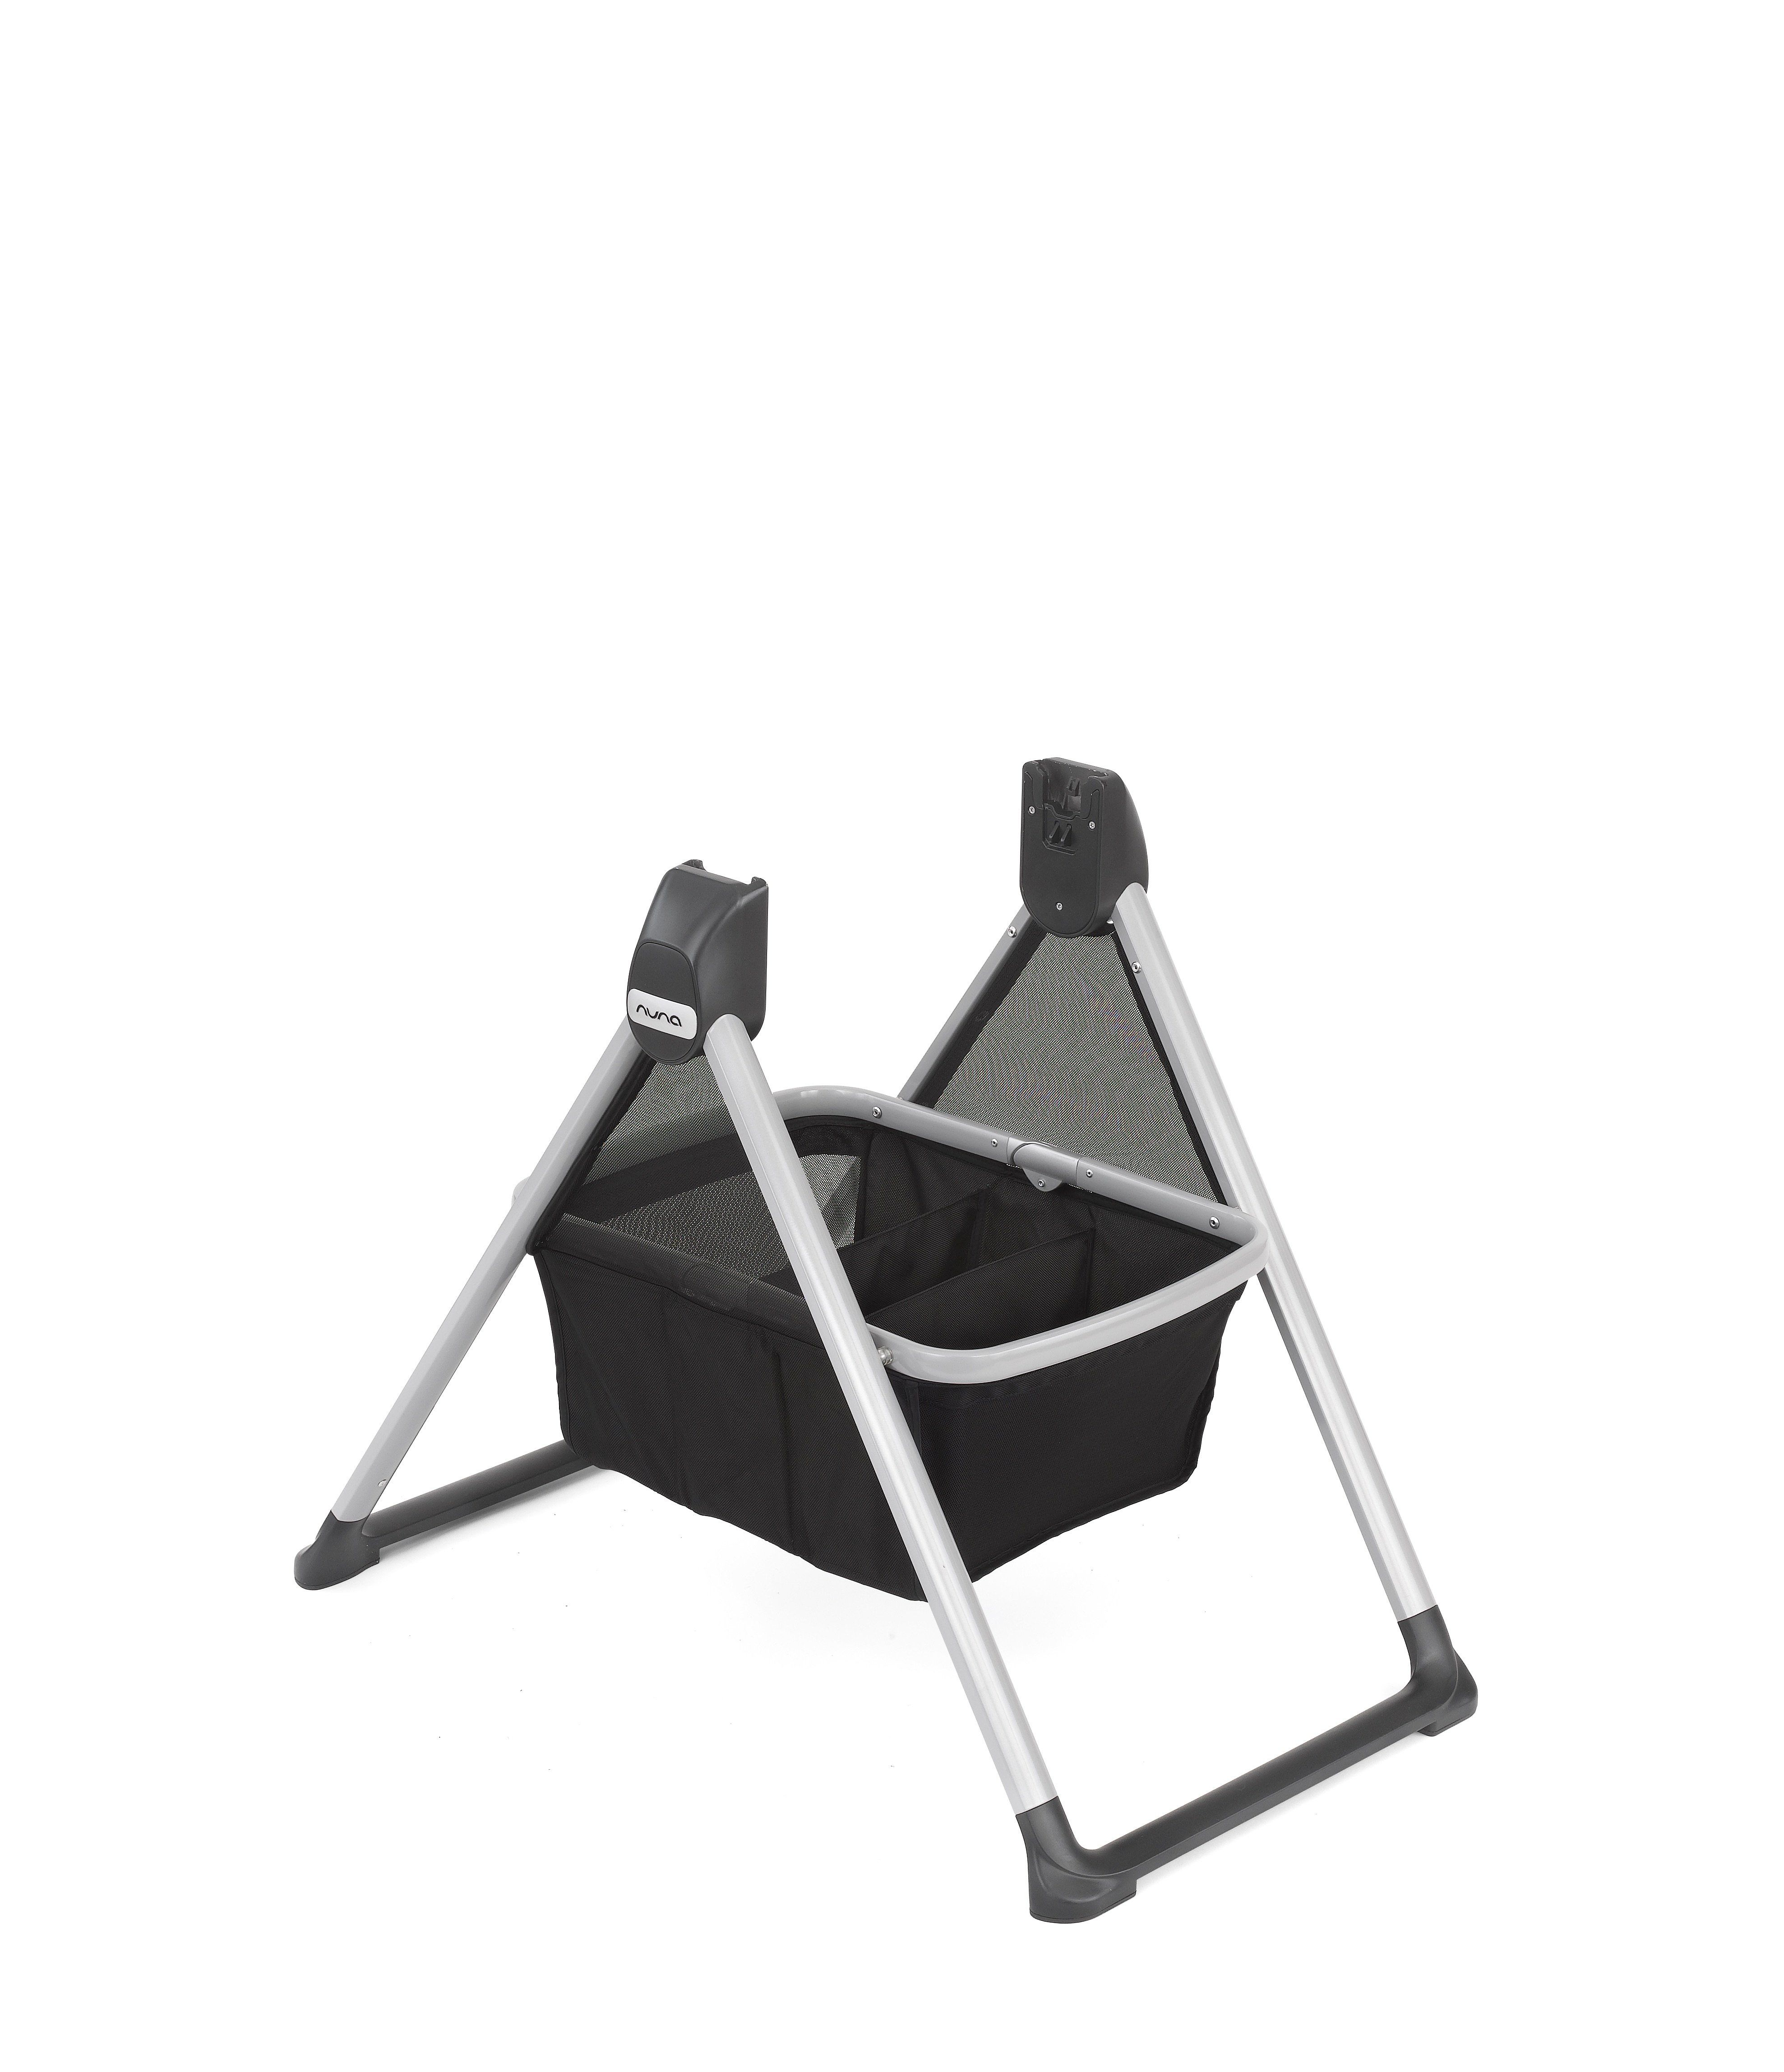 The Nuna MIXX Series Stand provides an easy and safe way